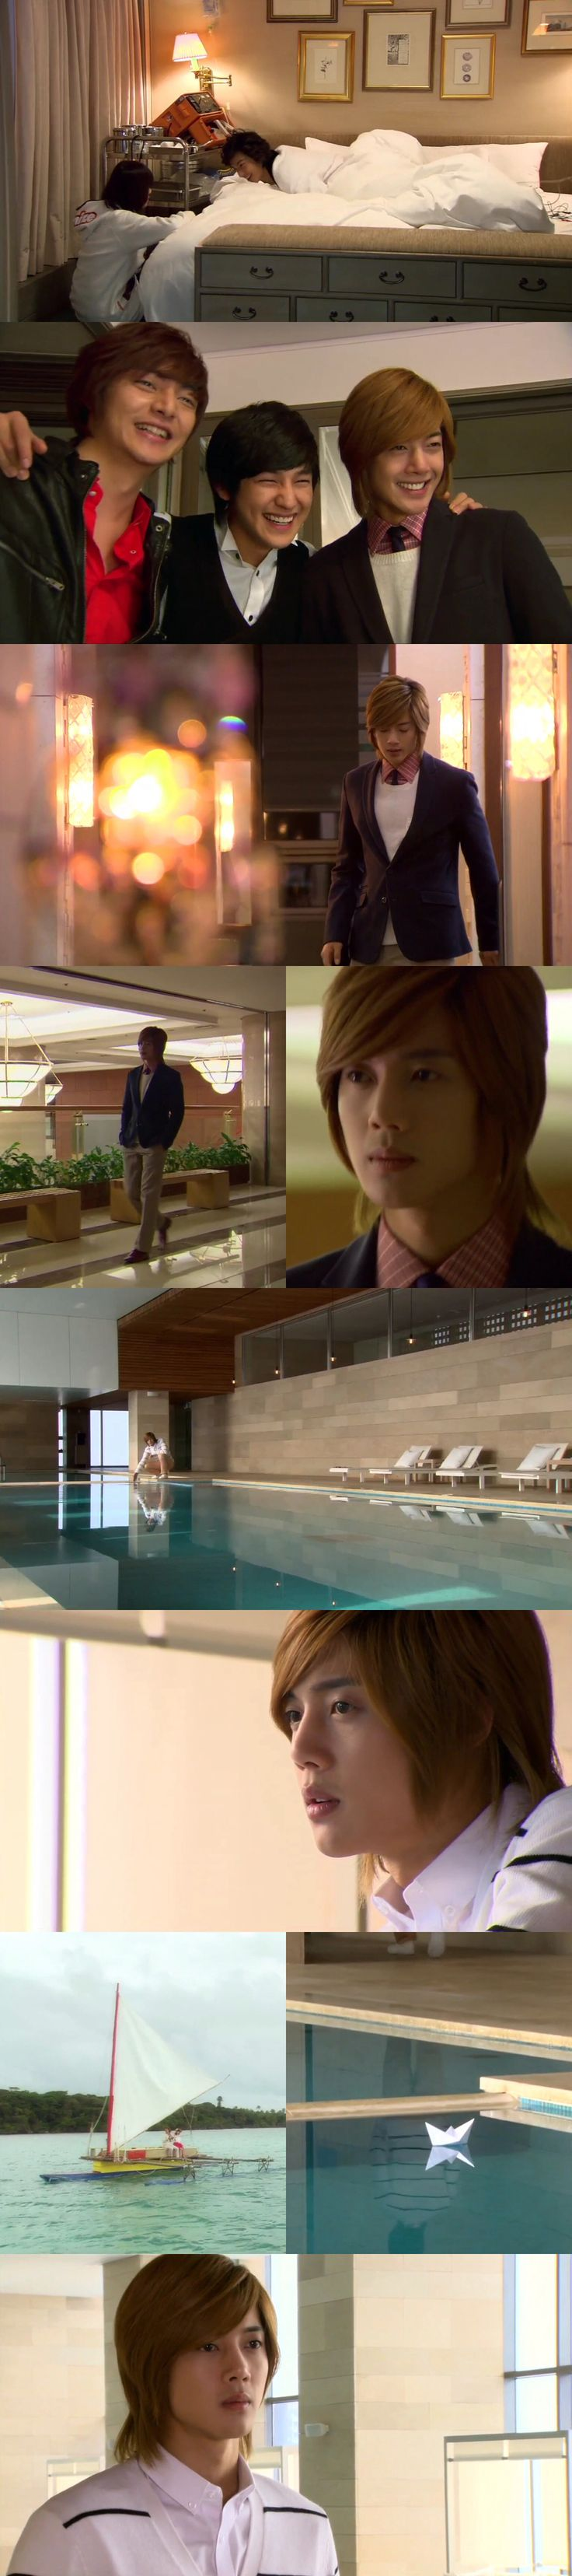 Missing Geum Jan Di.  It shows just how much he gave up for his friend.  Boys Over Flowers, Ku Hye Sun, Kim Hyun Joong, Lee Min Ho, Kim Joon, Kim Bum #KDrama